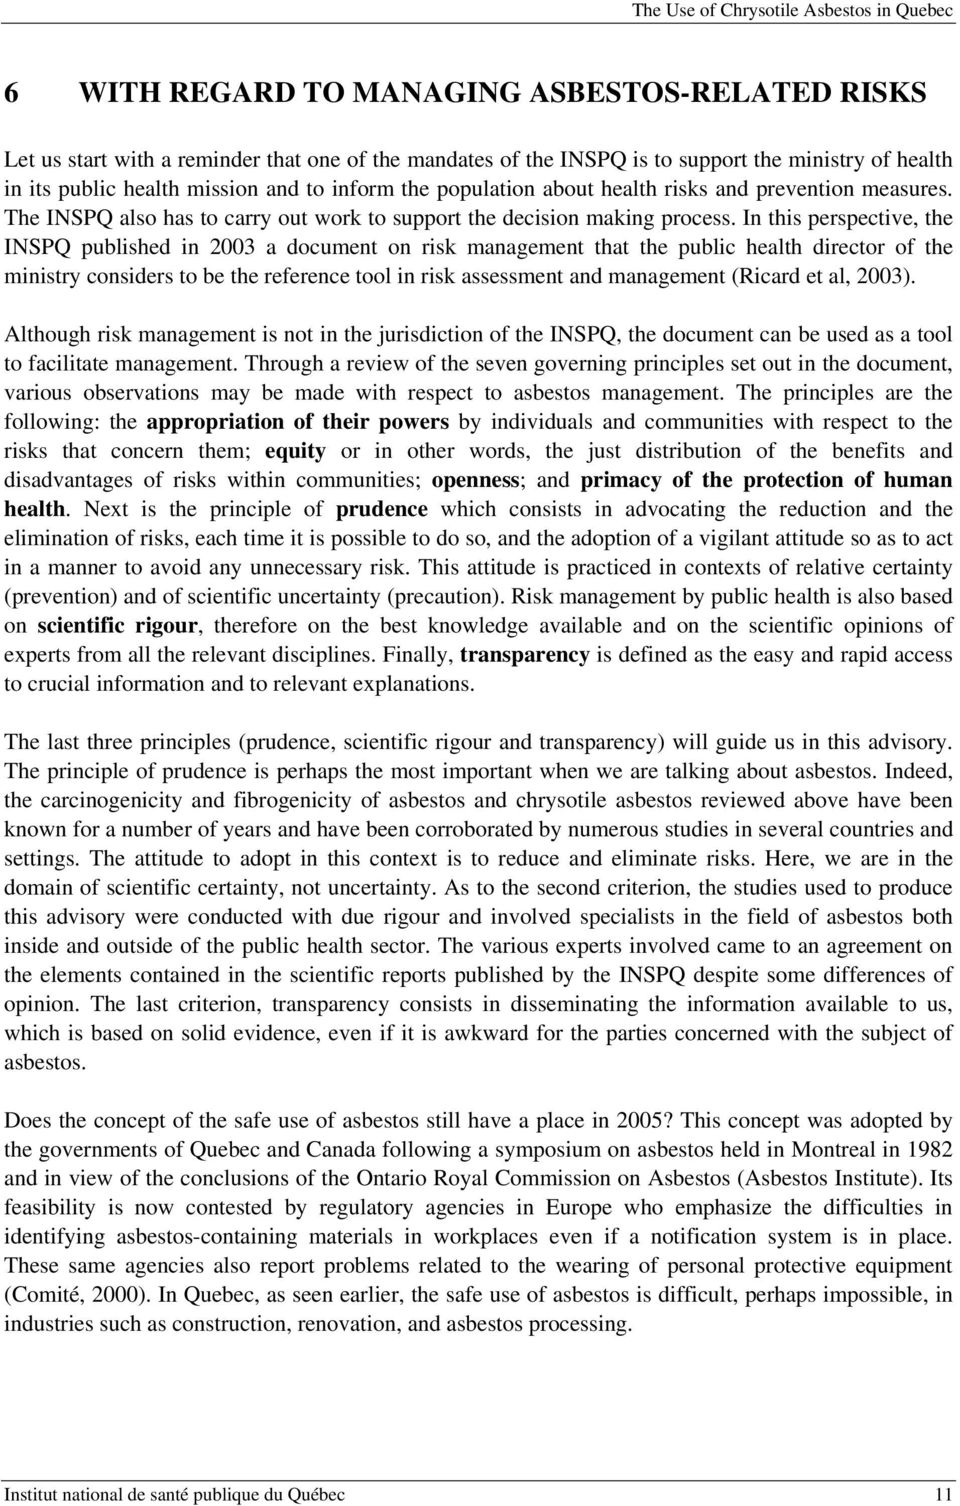 In this perspective, the INSPQ published in 2003 a document on risk management that the public health director of the ministry considers to be the reference tool in risk assessment and management